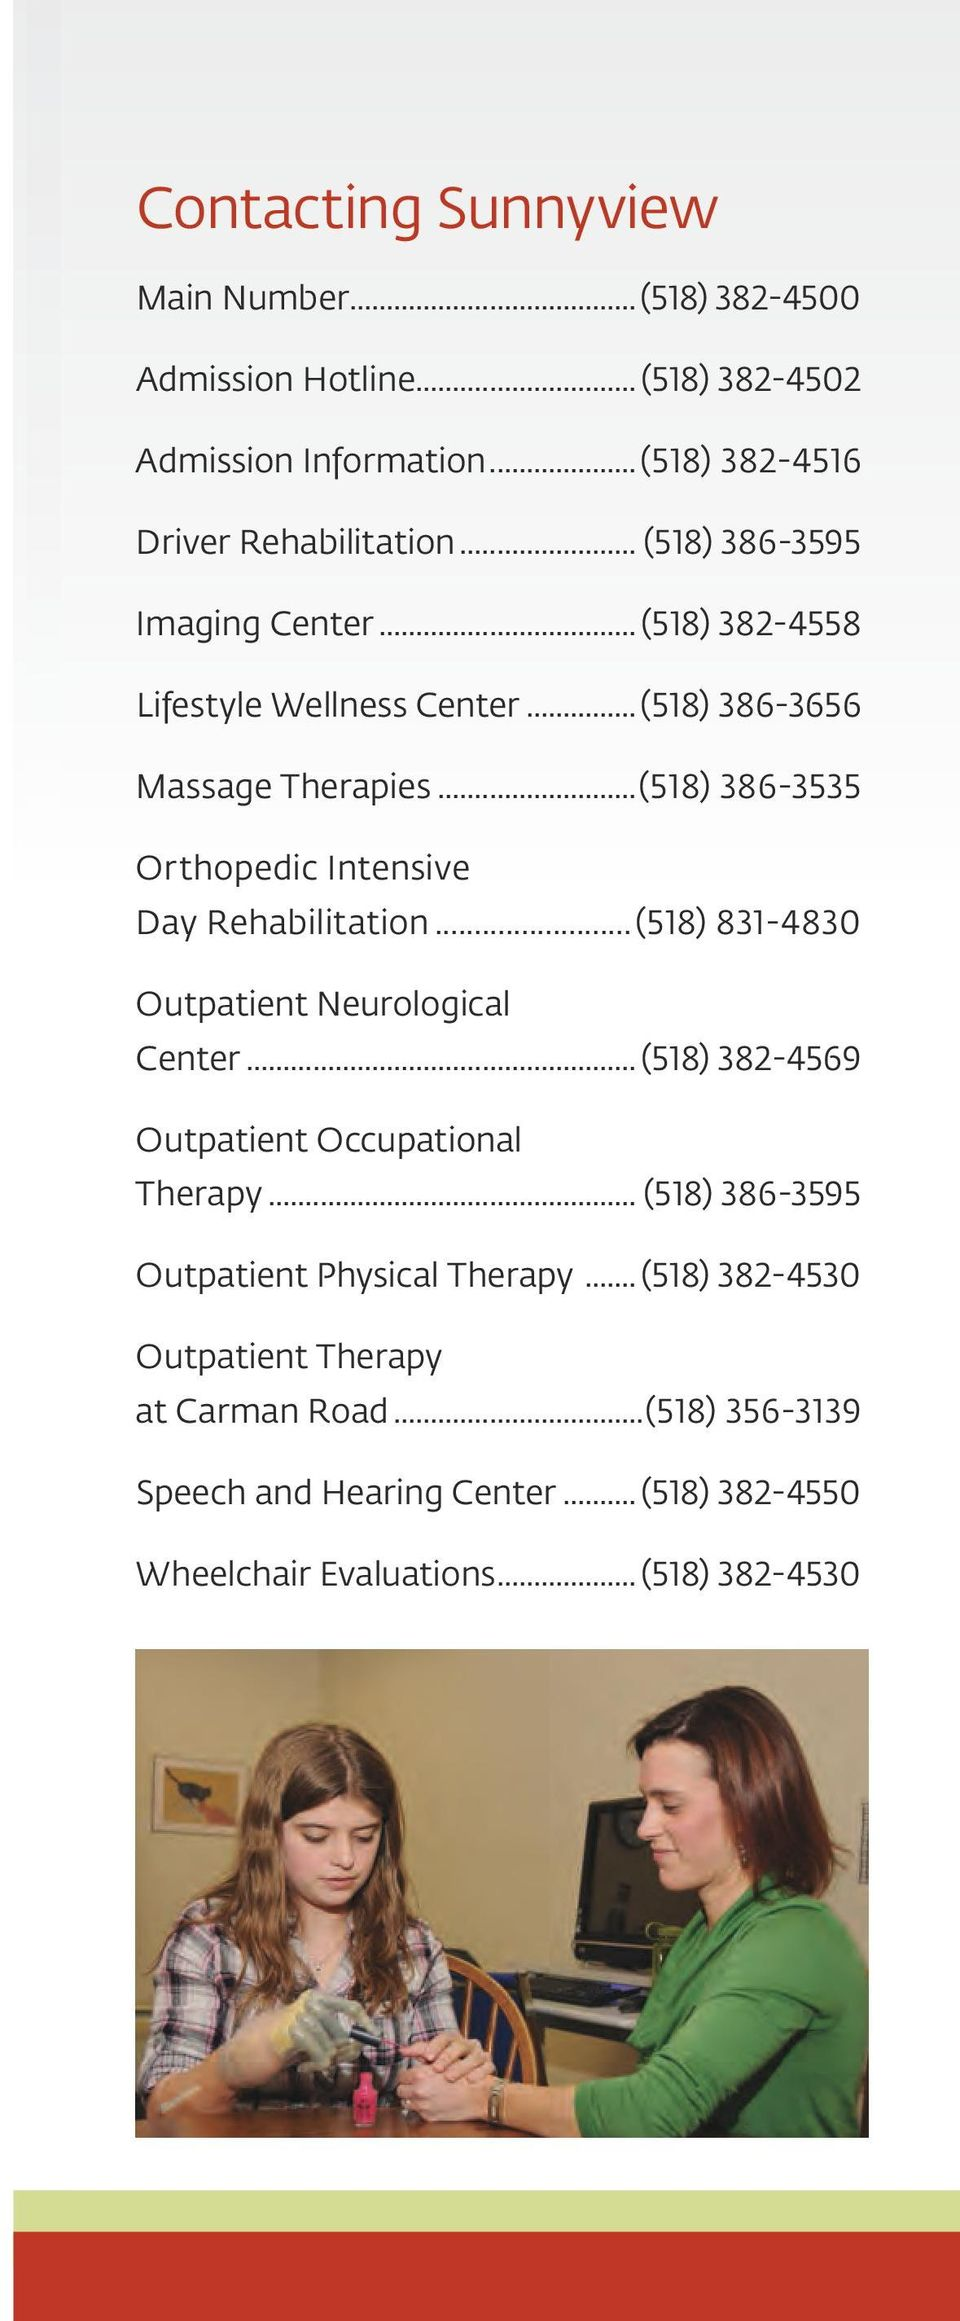 ..(518) 386-3535 Orthopedic Intensive Day Rehabilitation...(518) 831-4830 Outpatient Neurological Center... (518) 382-4569 Outpatient Occupational Therapy.